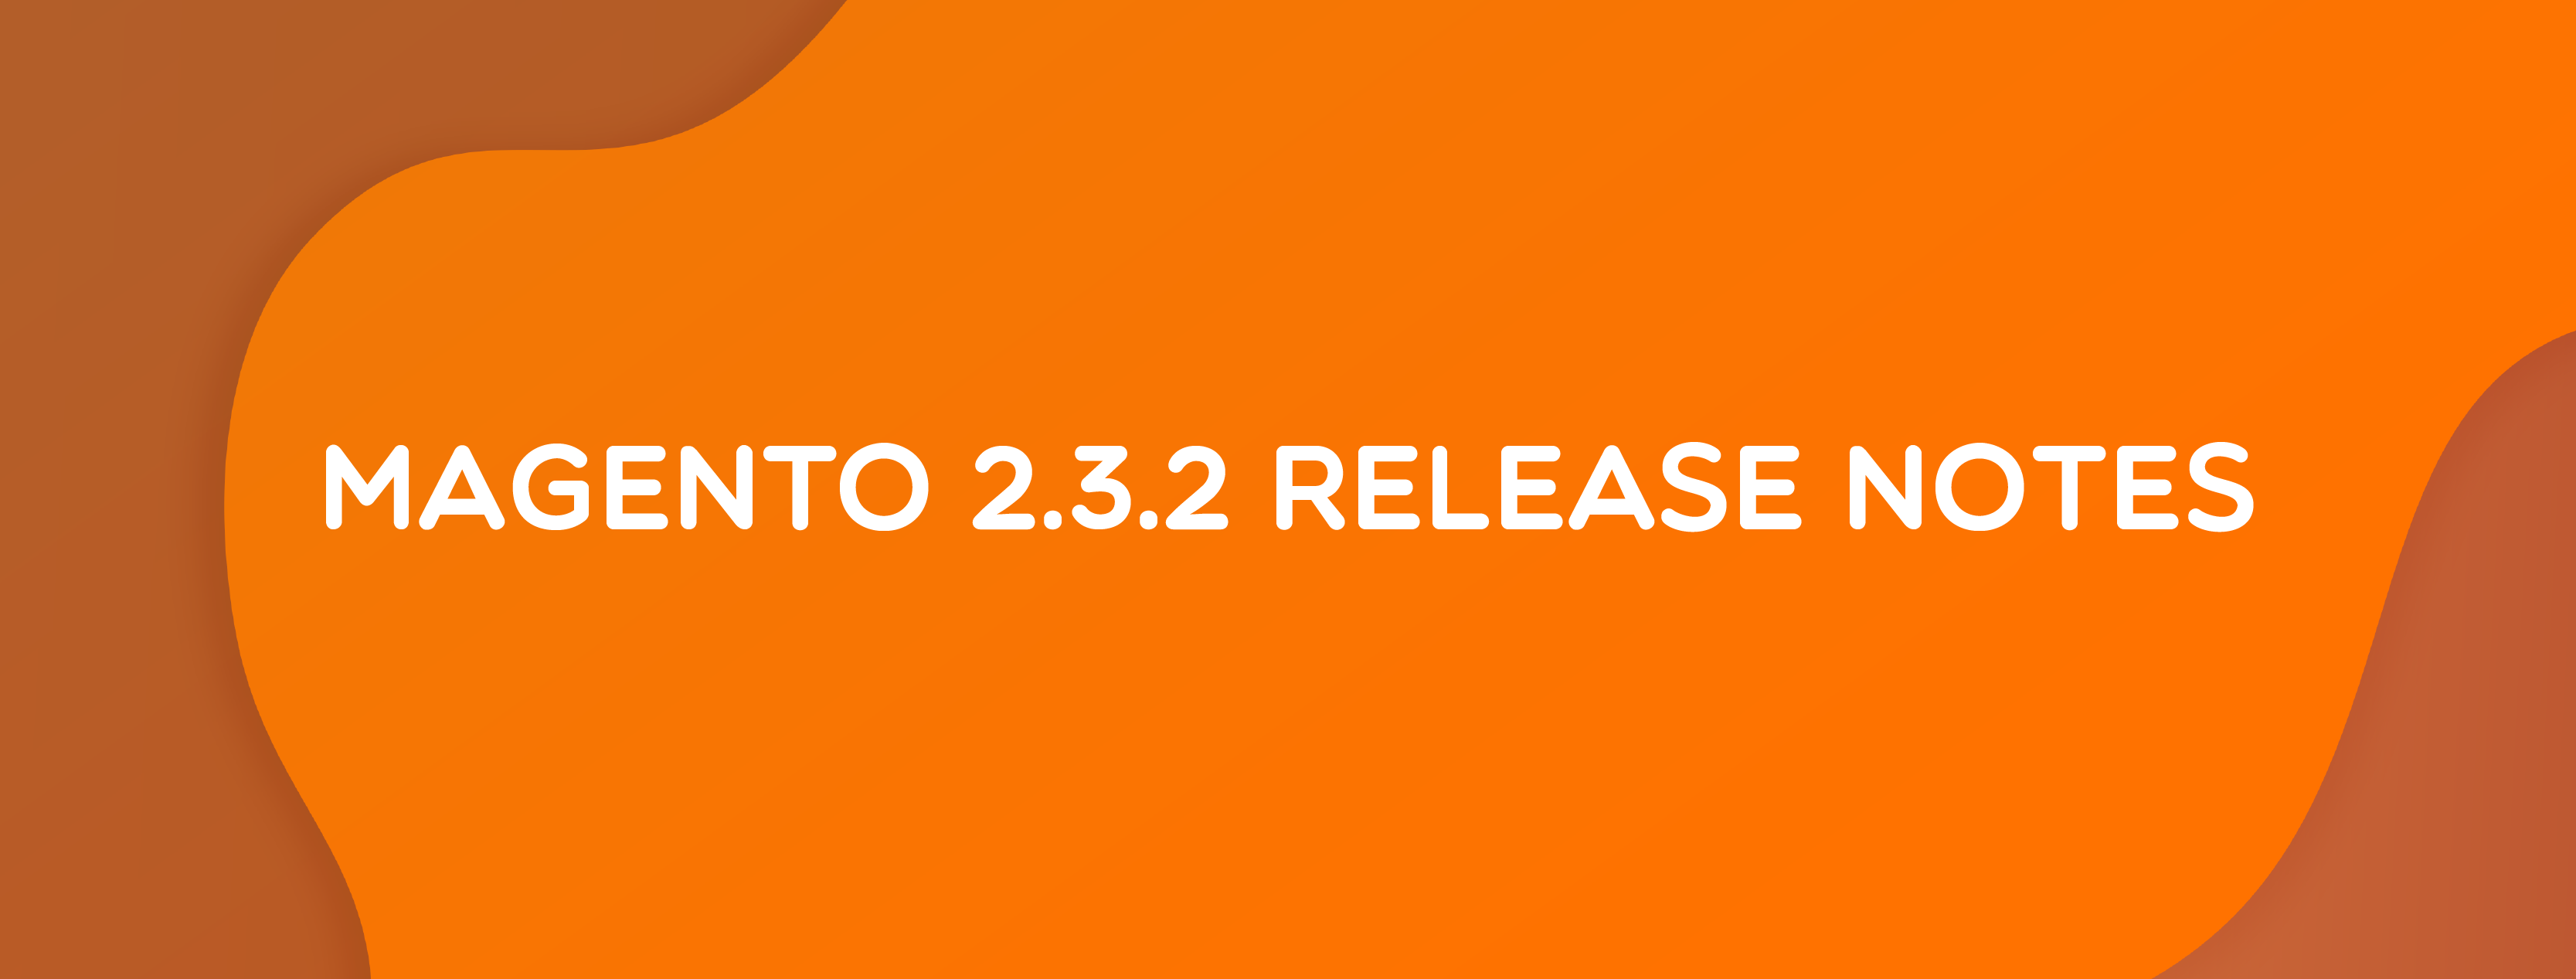 Magento 2.3.2 Release Notes: Highlight Features & Enhancements